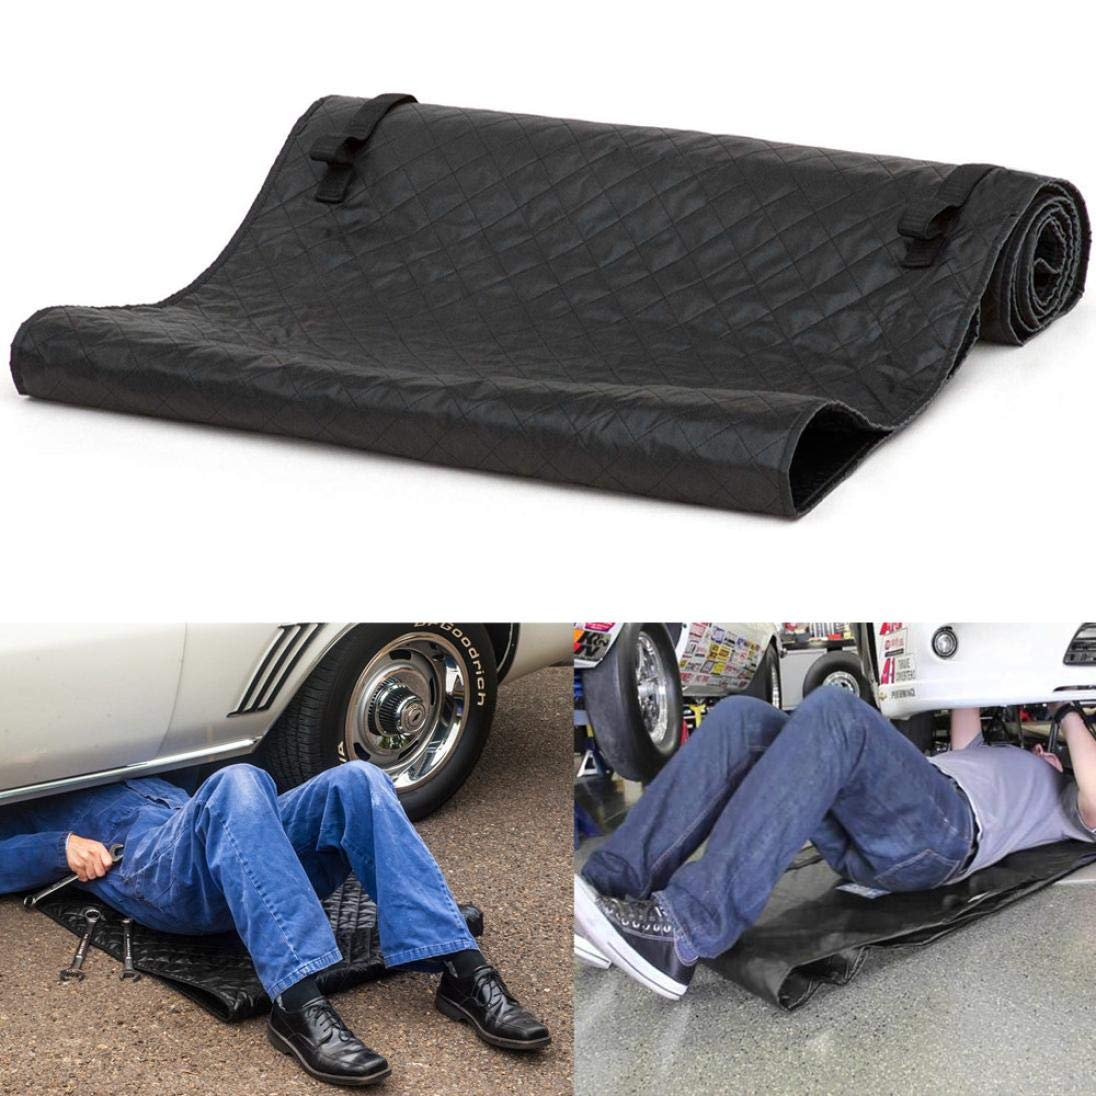 Aimik Magic Automotive Creeper Pad Rolling Creepers Repair Pad For Working On The Ground 27.51'' x 58.95''